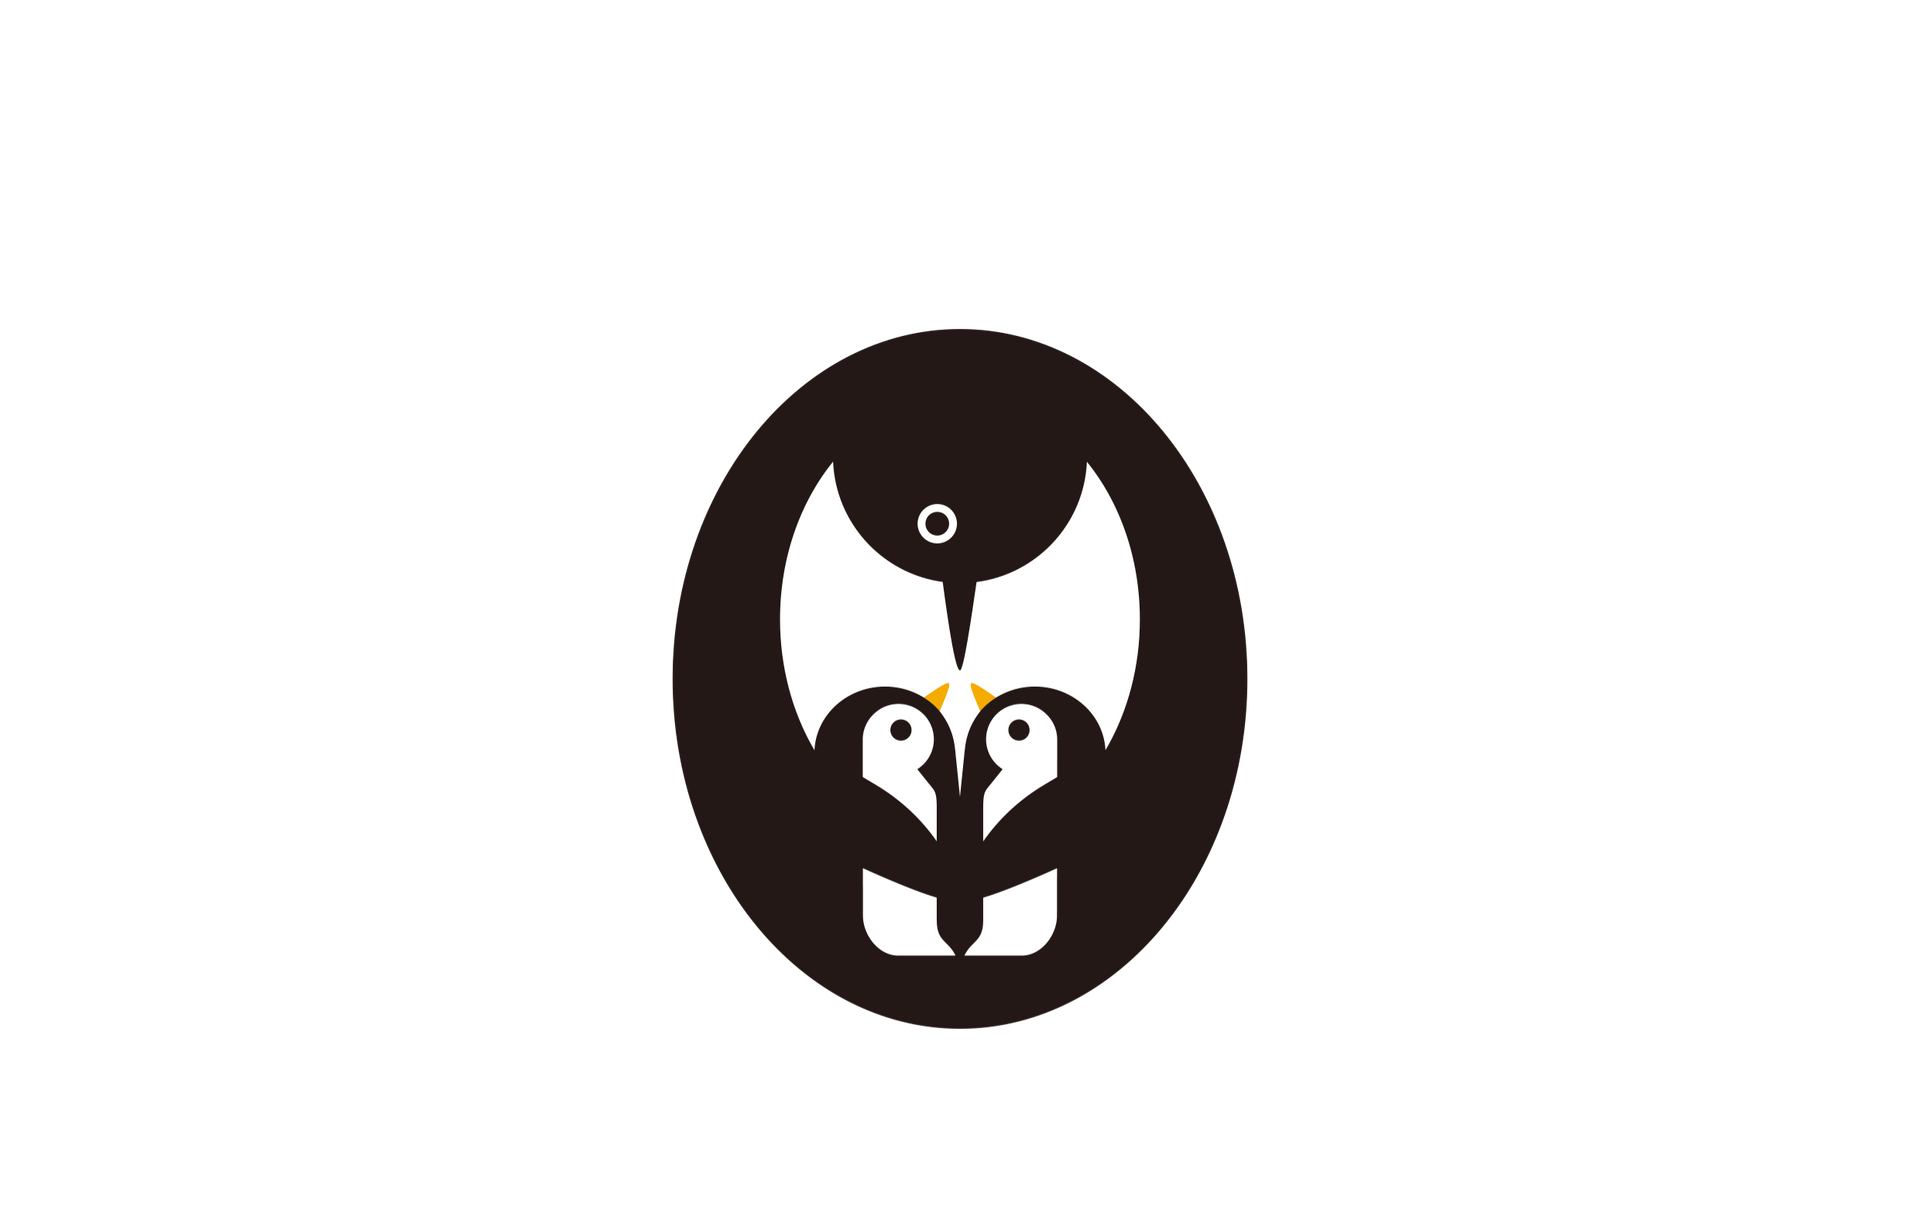 penguin_logo_edited.png